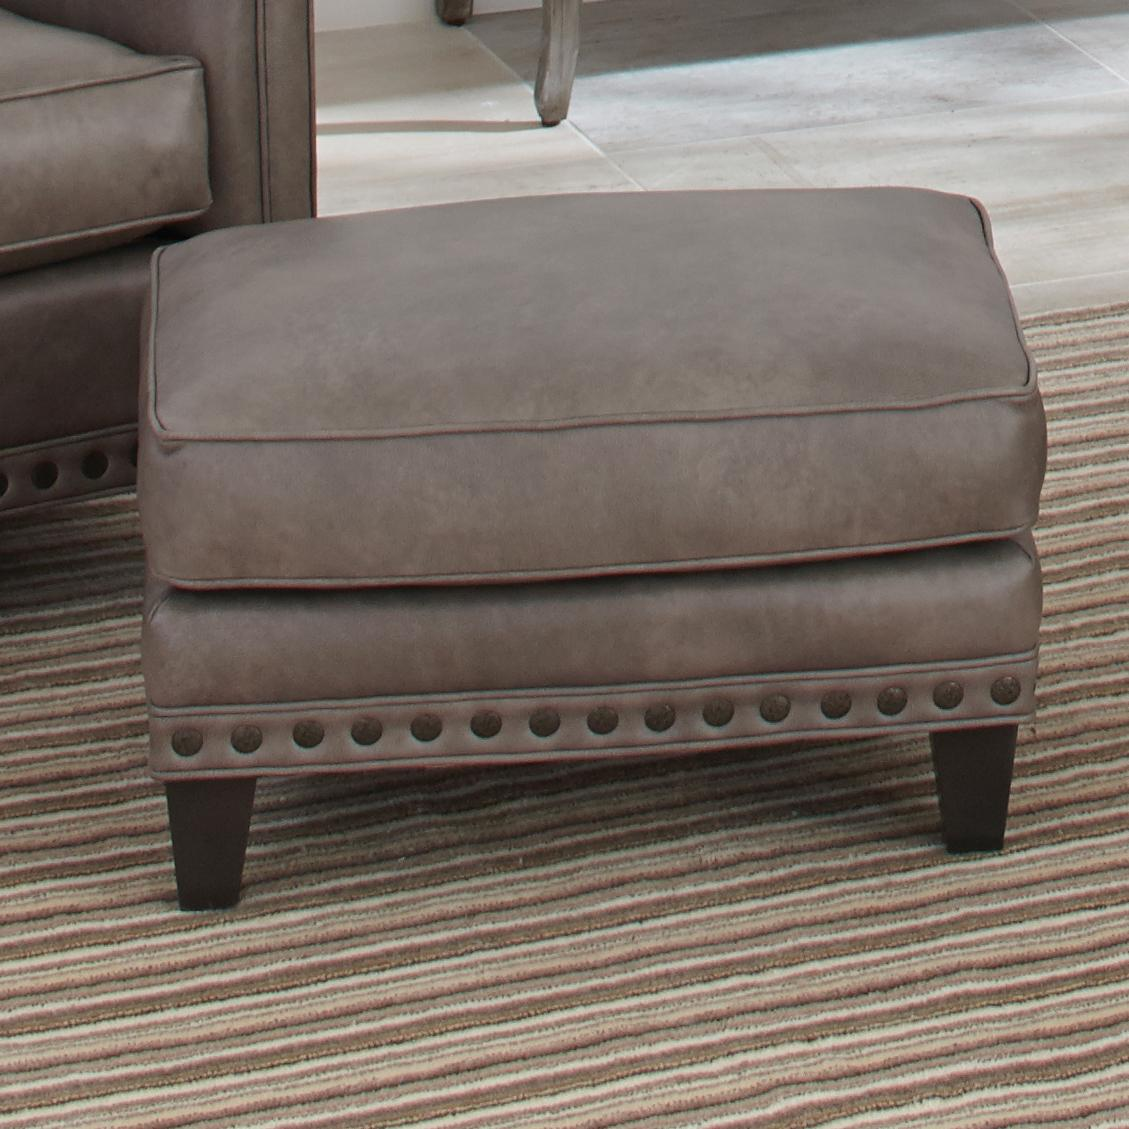 227 Upholstered Ottoman by Smith Brothers at Rooms for Less